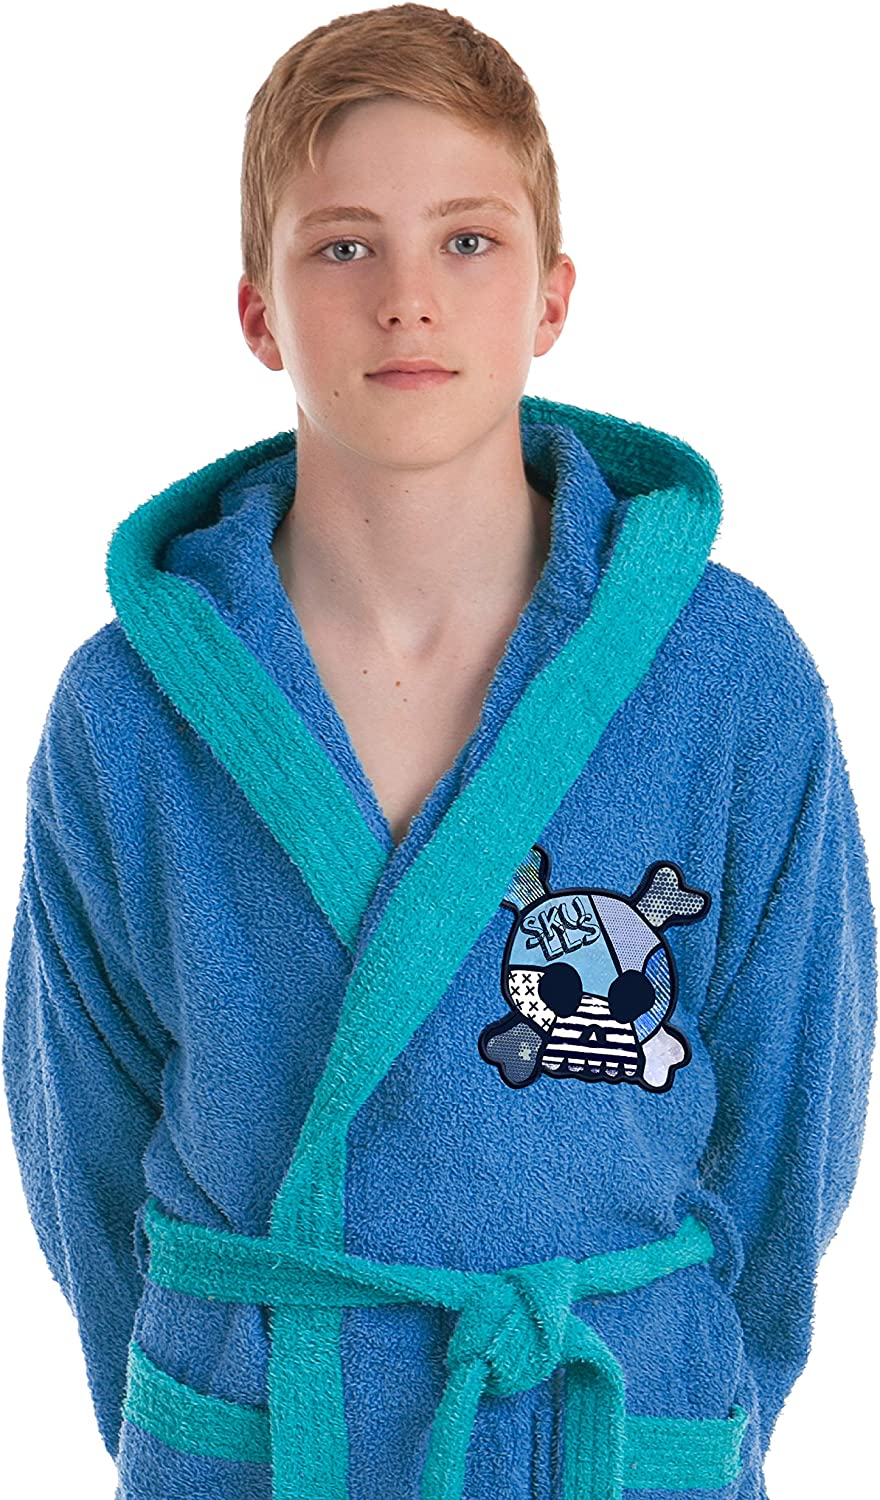 Embroidered Bathrobe Skulls Skull 100/% Cotton Stilia Bathrobe Shower Multicolour Child Years//Boy 14 Years Old